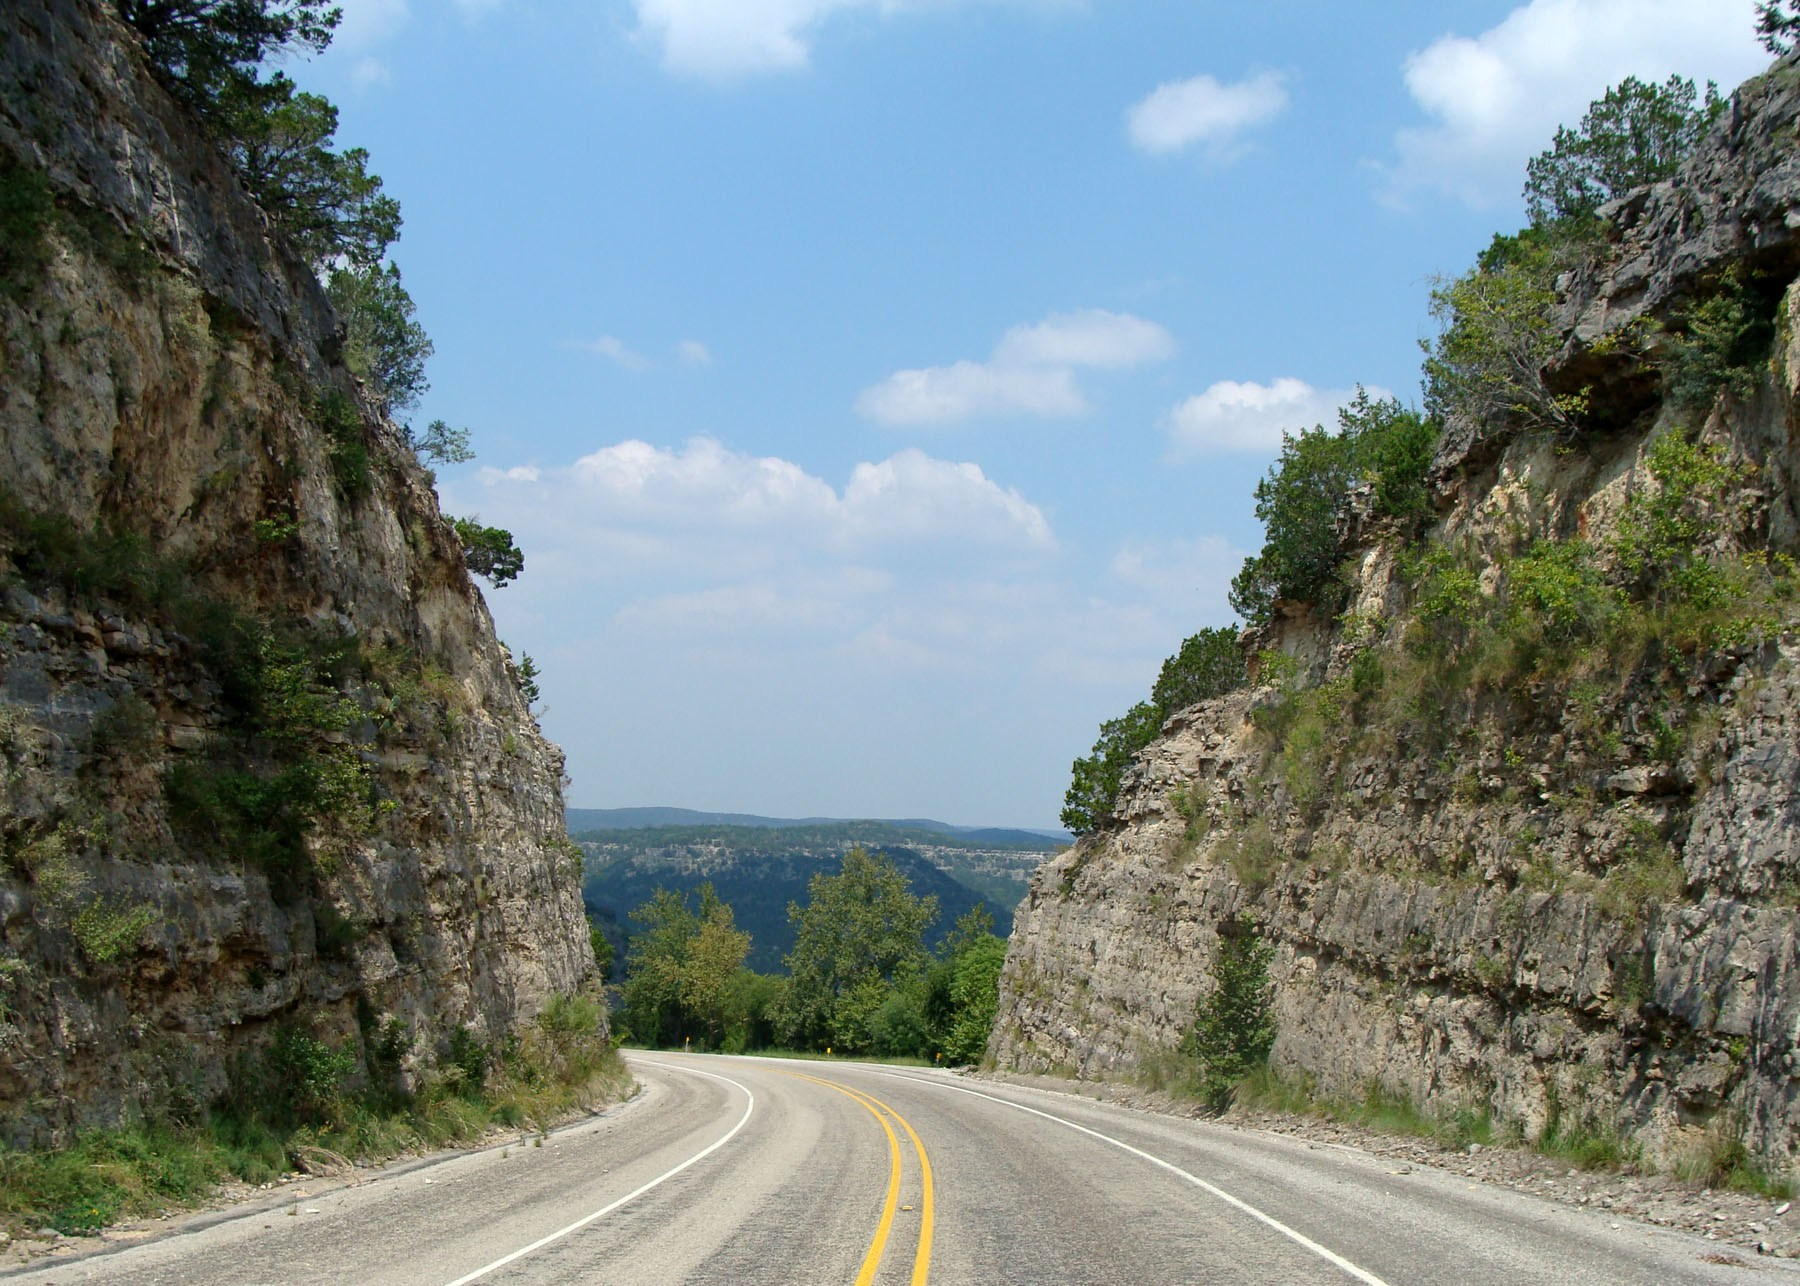 View of highway in Texas Hill Country